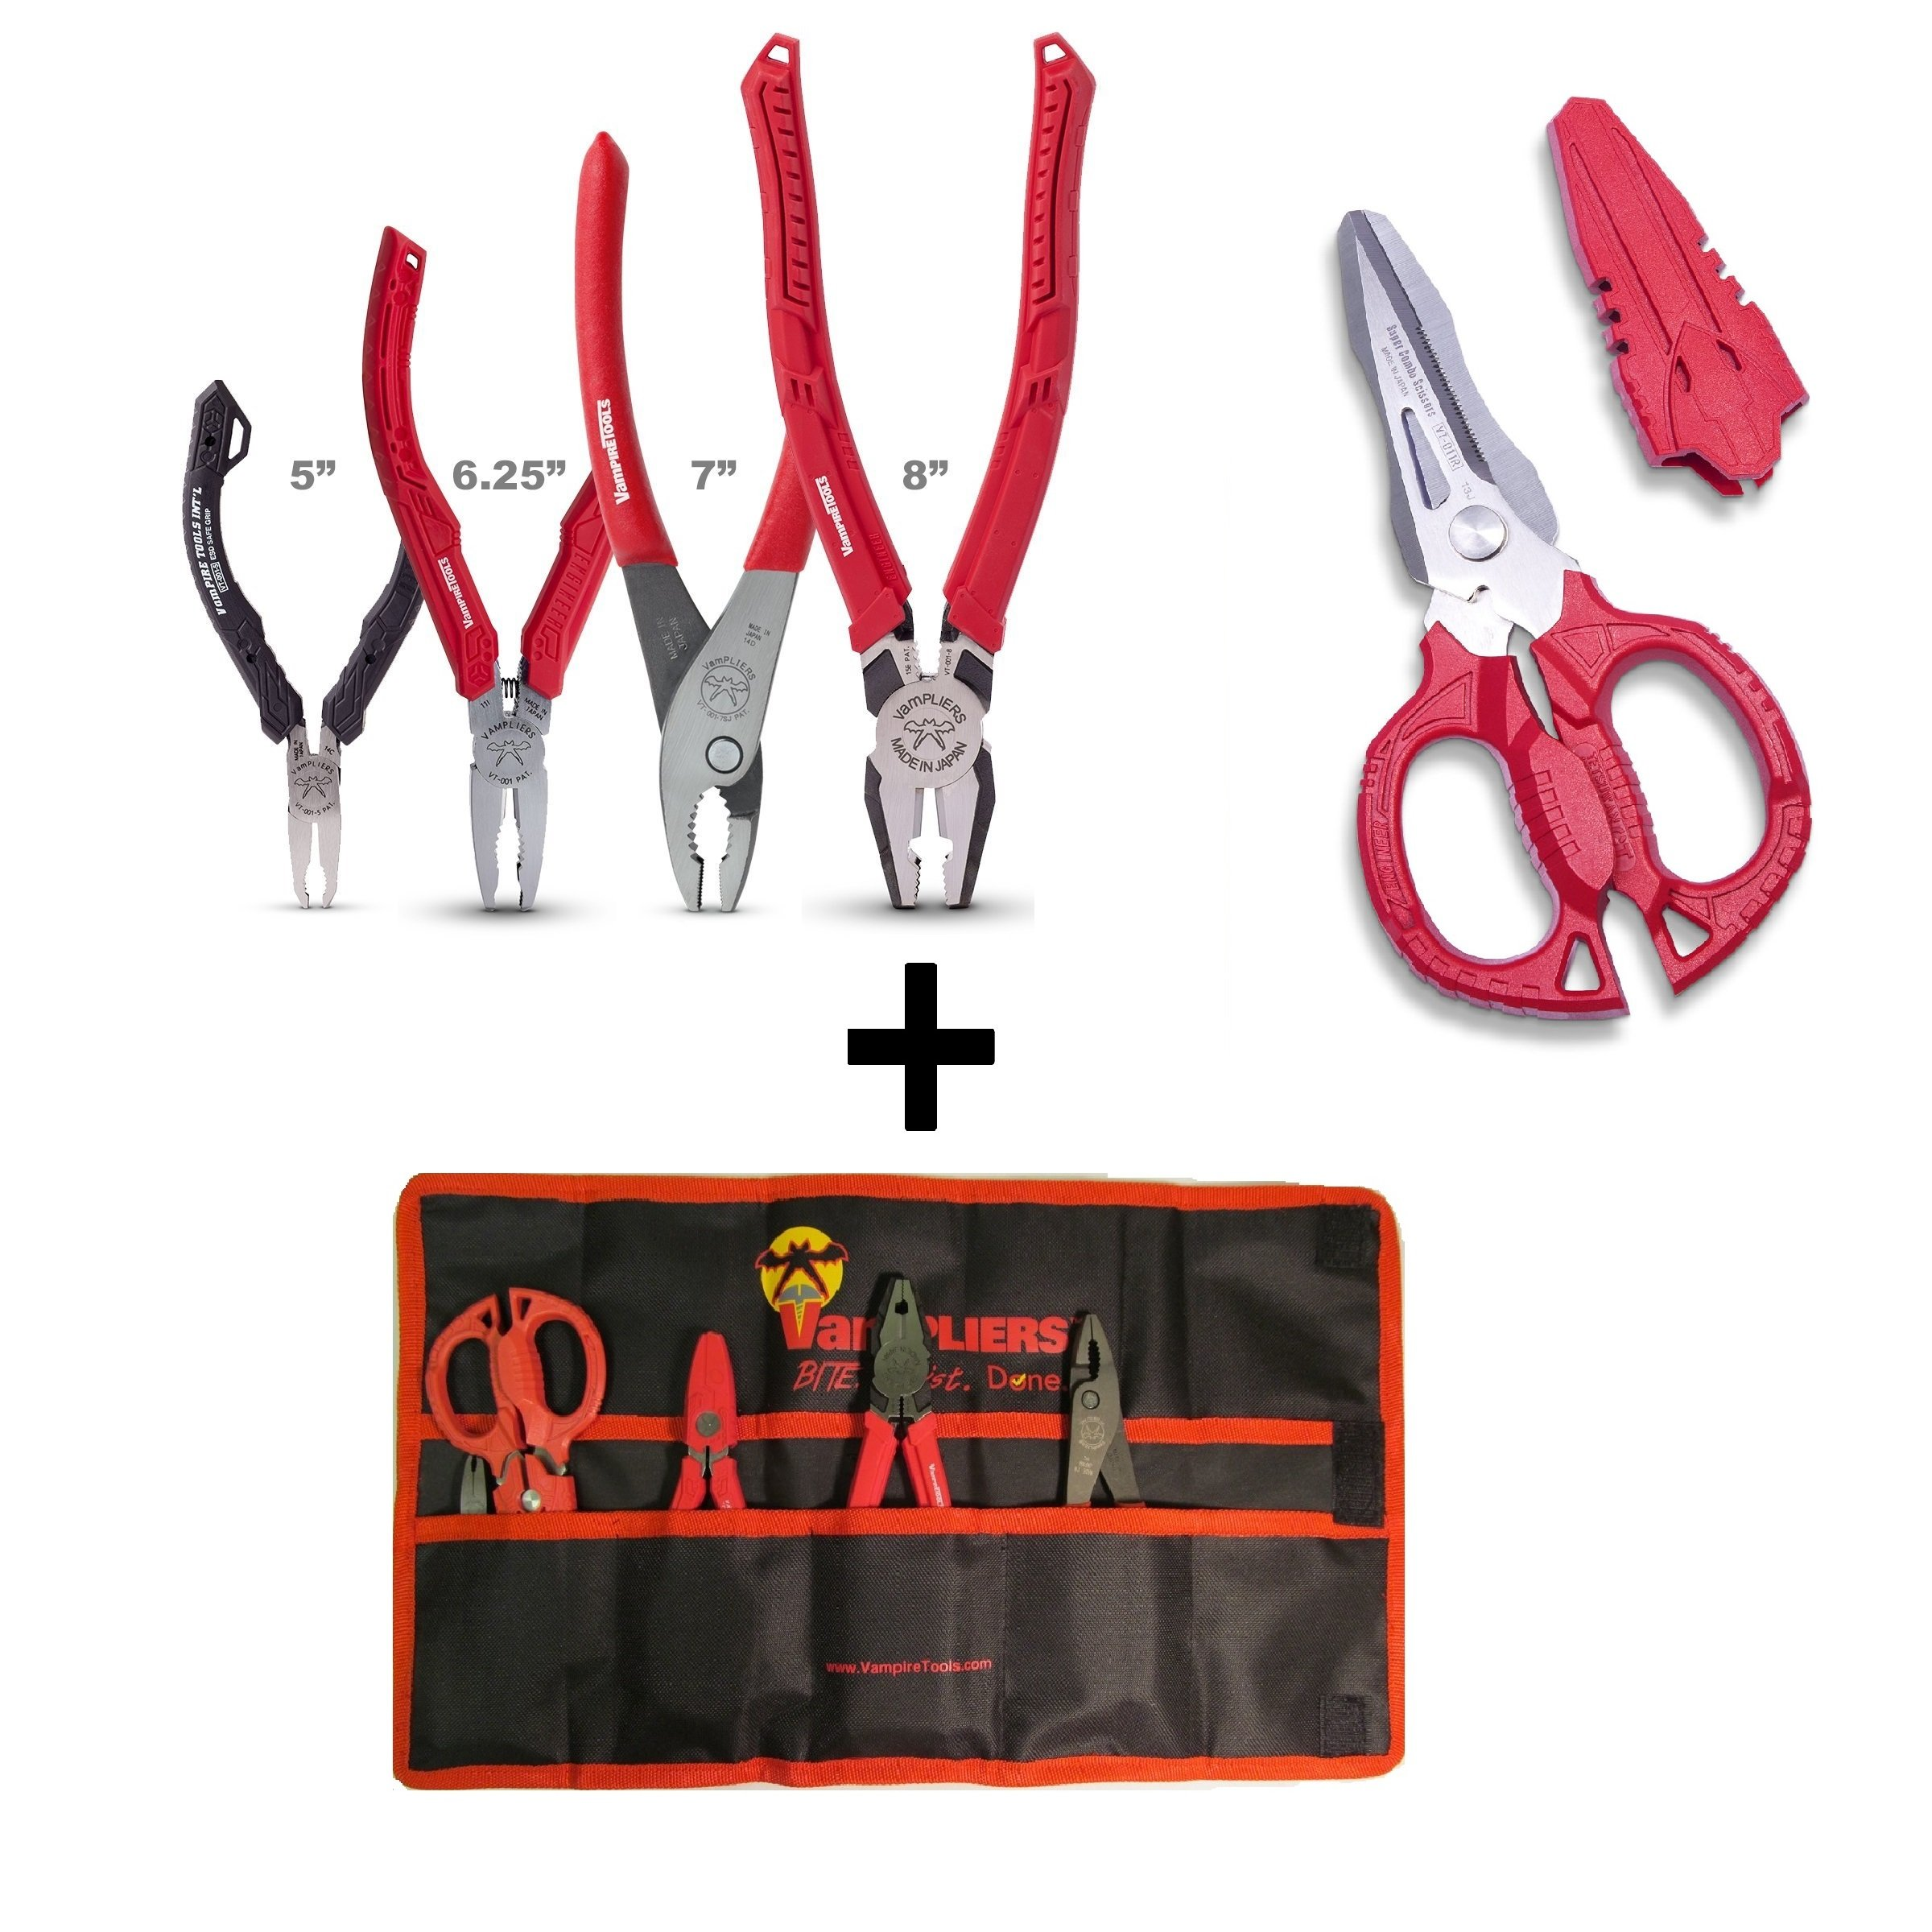 VamPLIERS 5-pc Set S5AP High Quality Specialty Pliers Extract Stripped Stuck Screws Rounded Nuts Bolts + SuperCombo Scissors Multipurpose Scissor + Tool Pouch